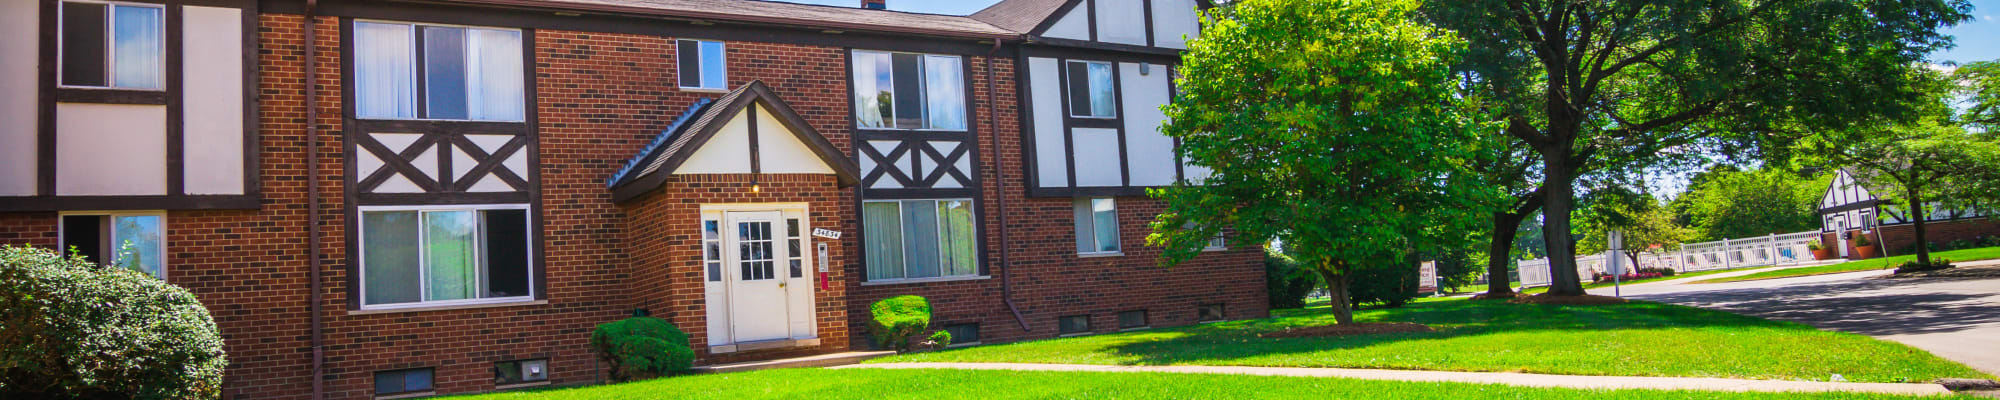 Schedule a tour to view Maple Creek Apartments in Sterling Heights, Michigan